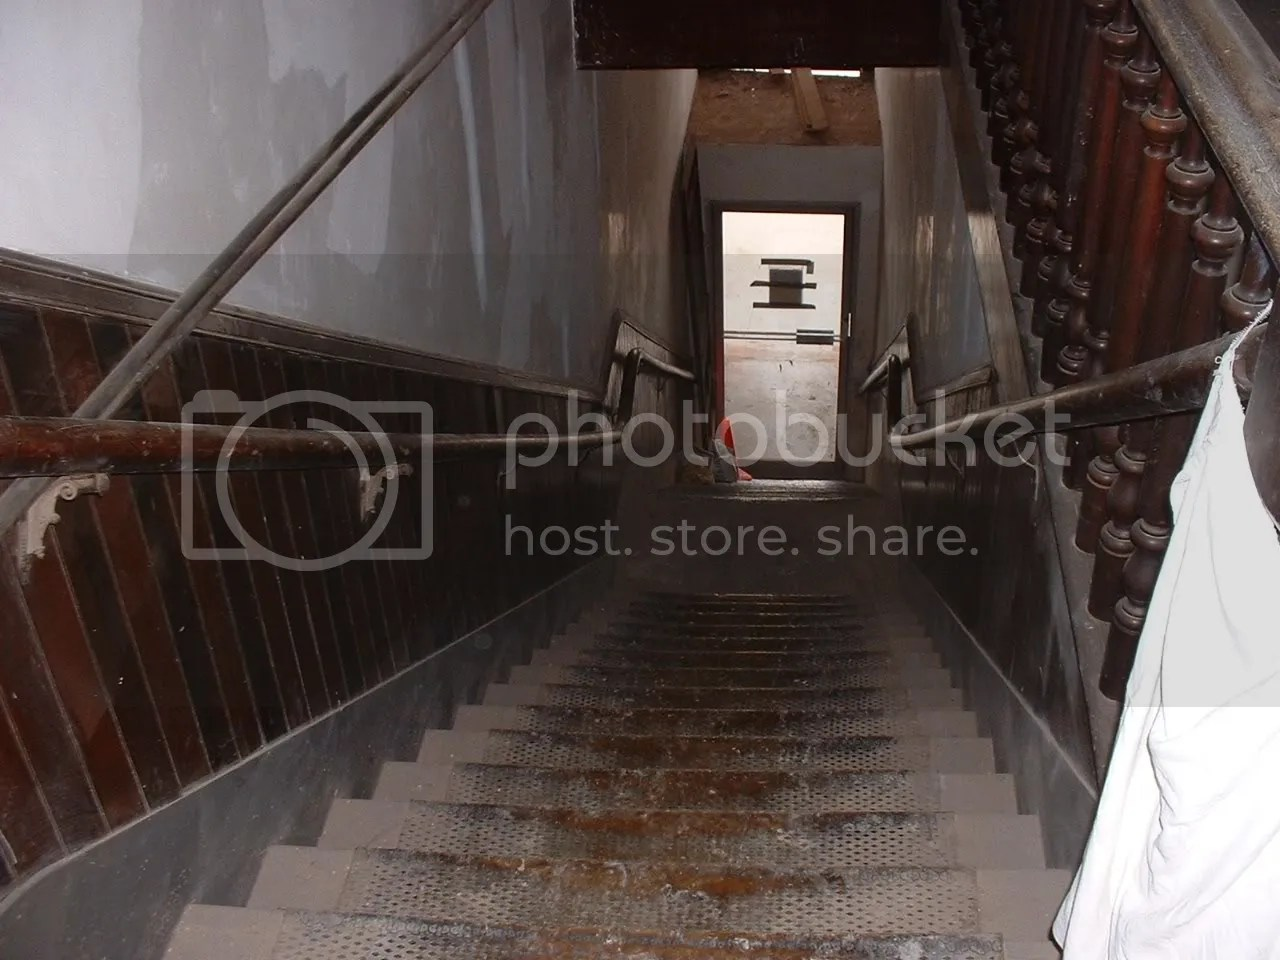 Those steep stairs lead from the front